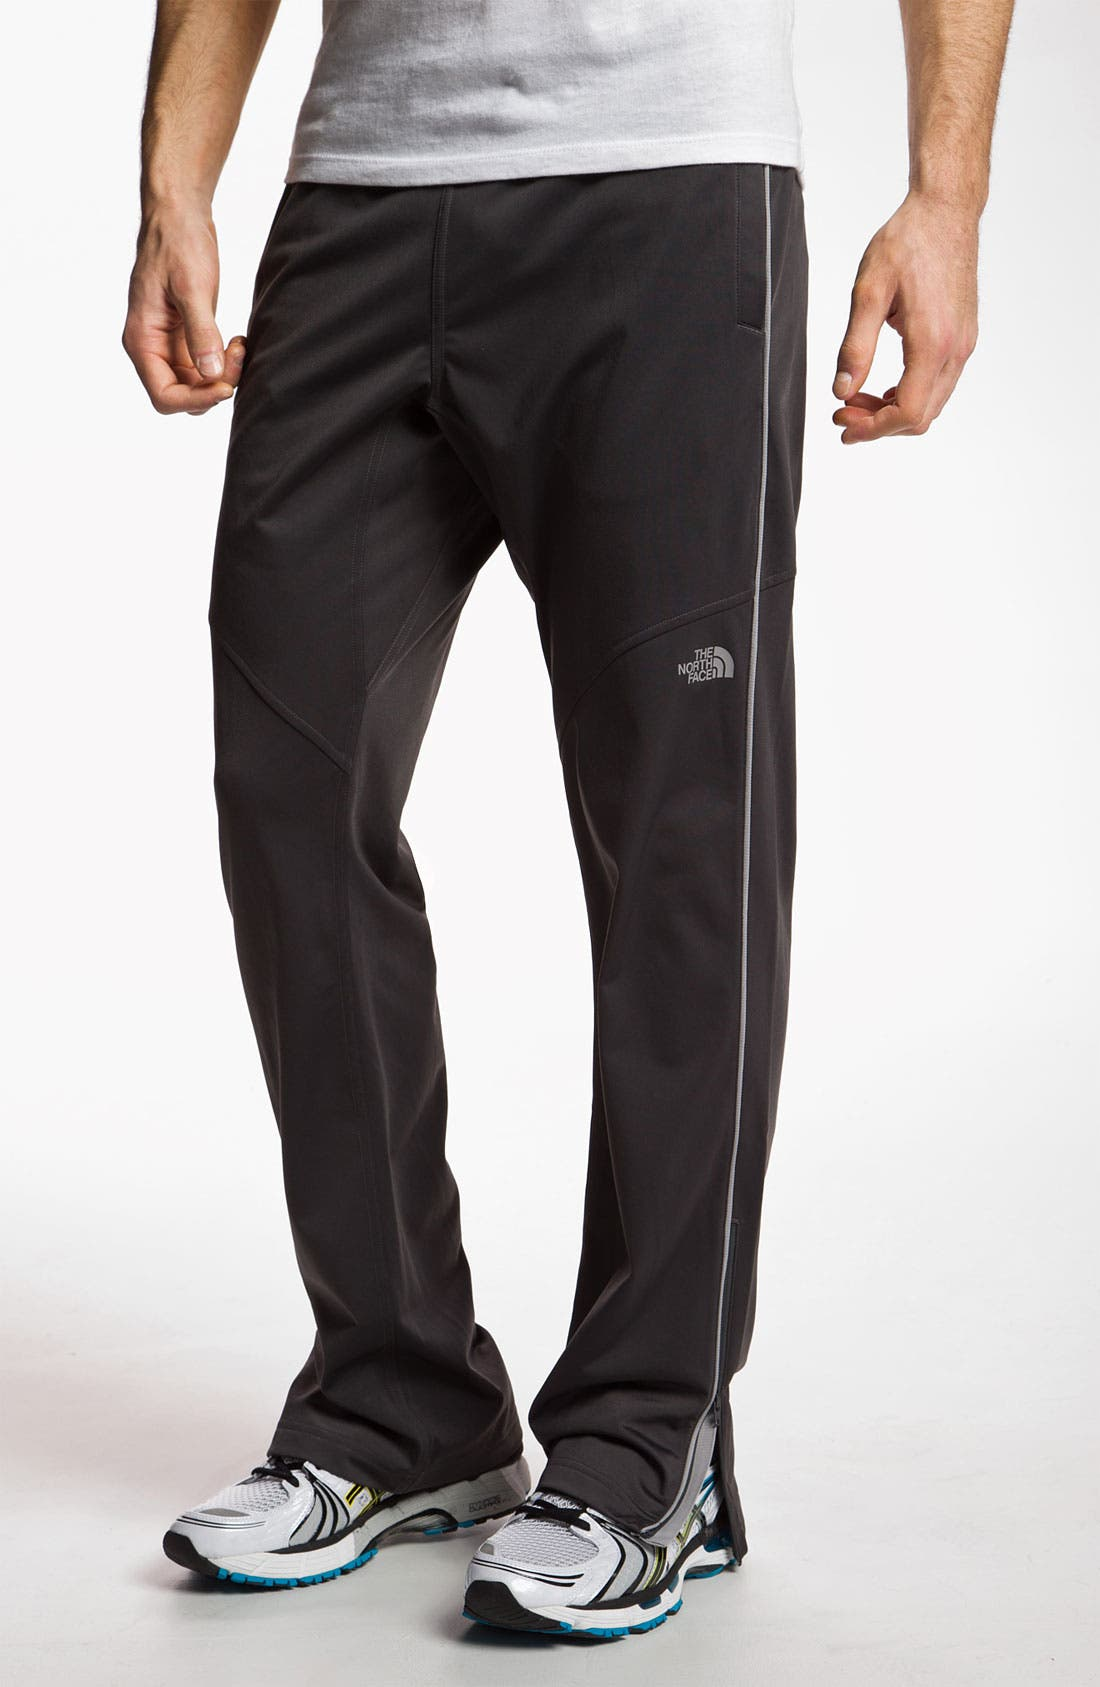 Alternate Image 1 Selected - The North Face 'Flex' Tricot Track Pants (Online Exclusive)